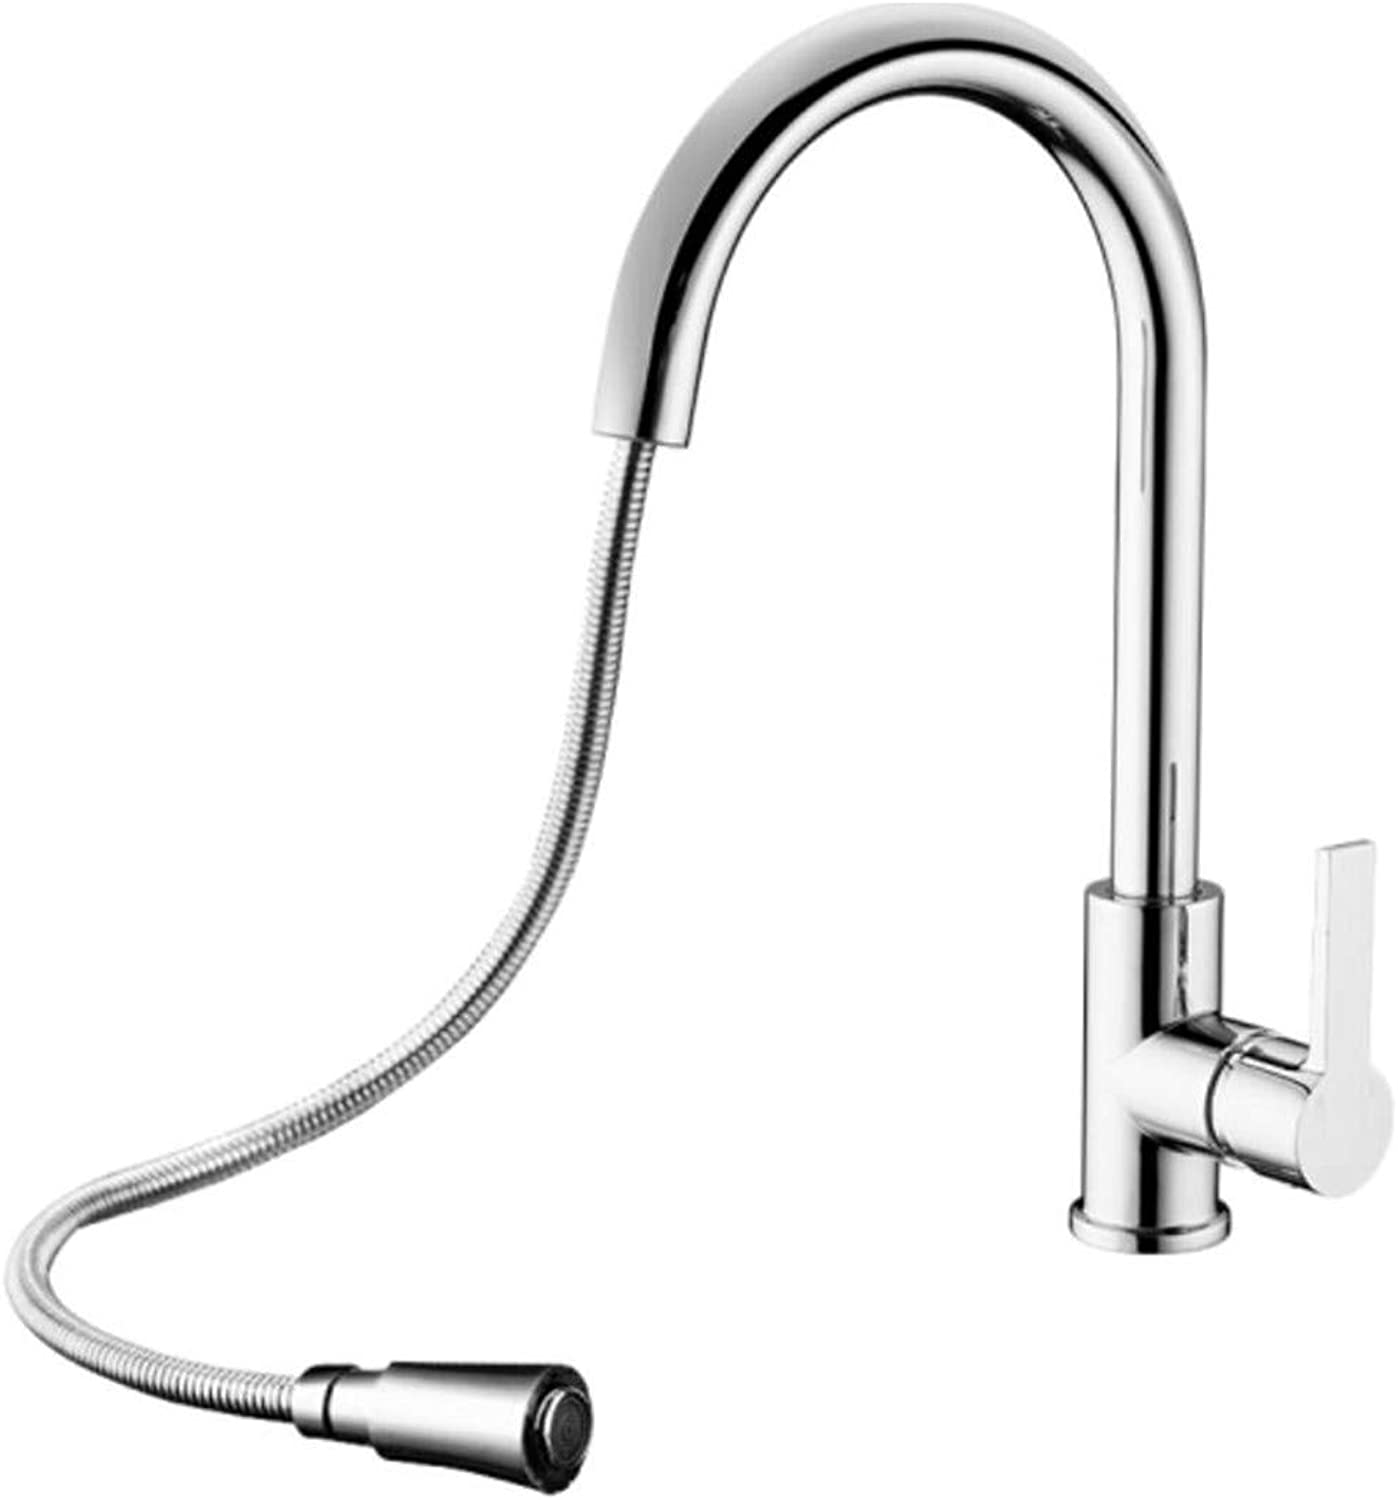 Mucert Bathroom Kitchen Faucet, All Copper Hot and Cold, Pulling Faucet, Can Turn Basin Faucet.